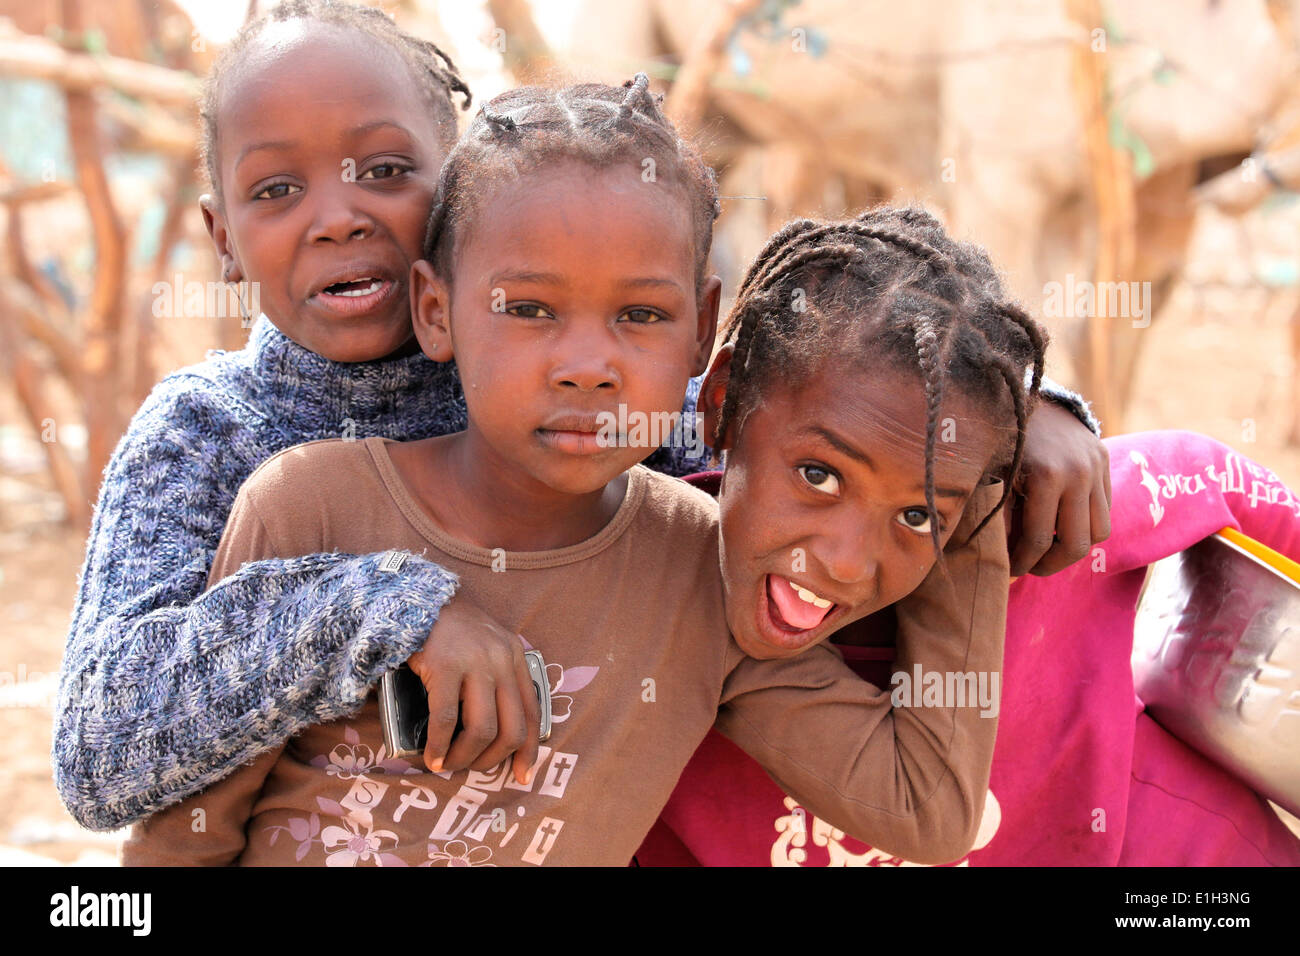 Young girls in Africa - going back to school - Stock Image